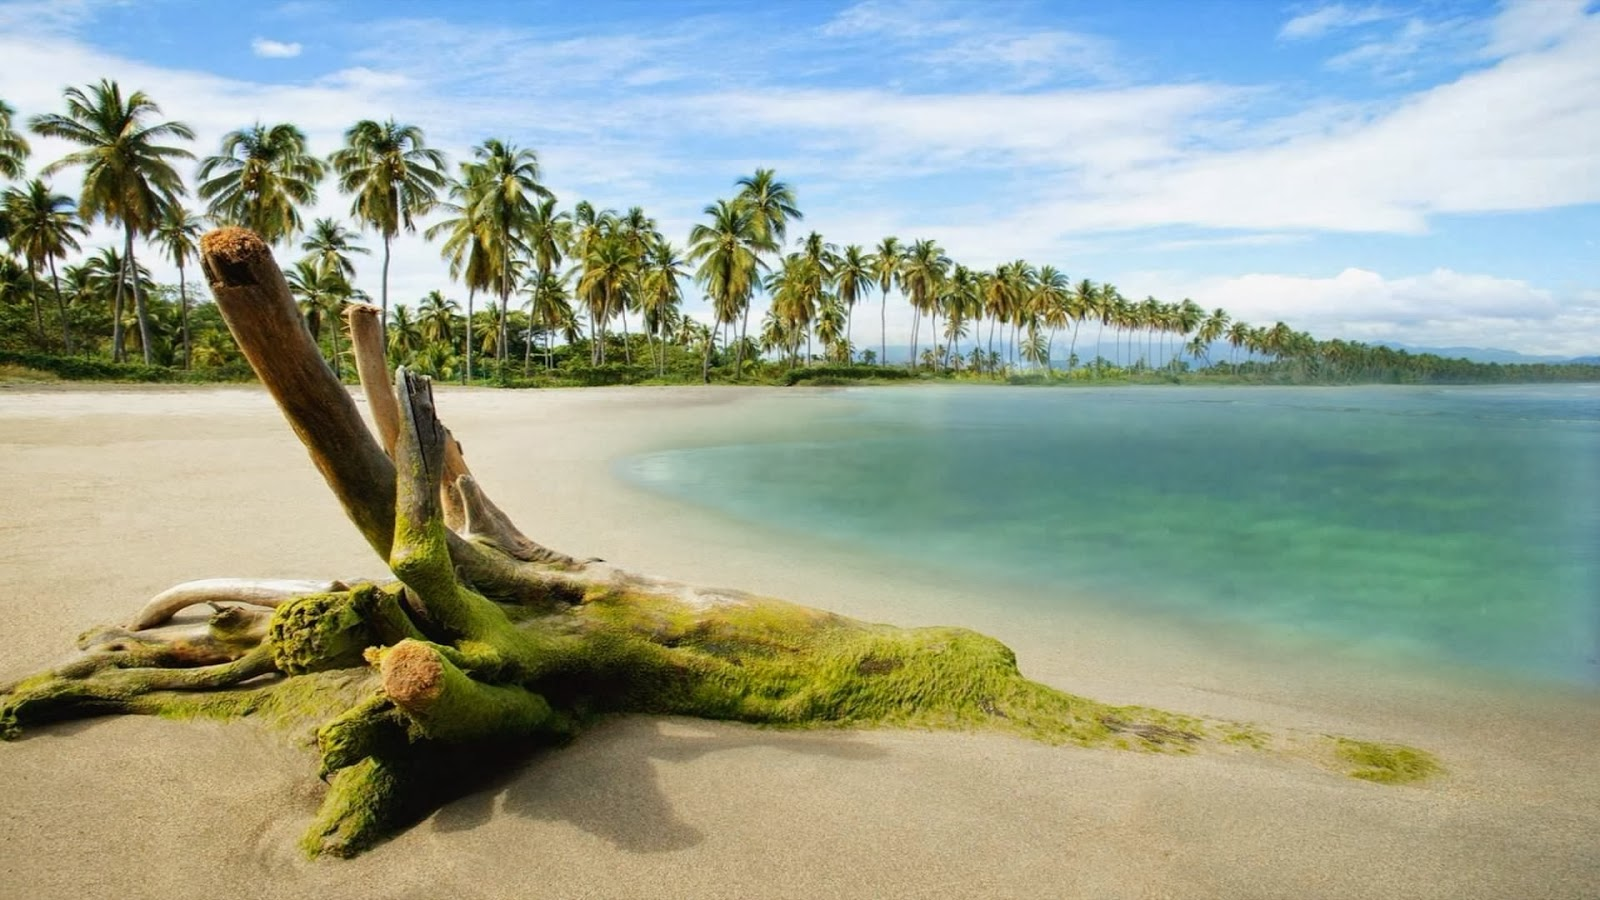 Beach-Nature-HD-1080p-Widescreen-HD-Blog-wallpaper-wp3603049